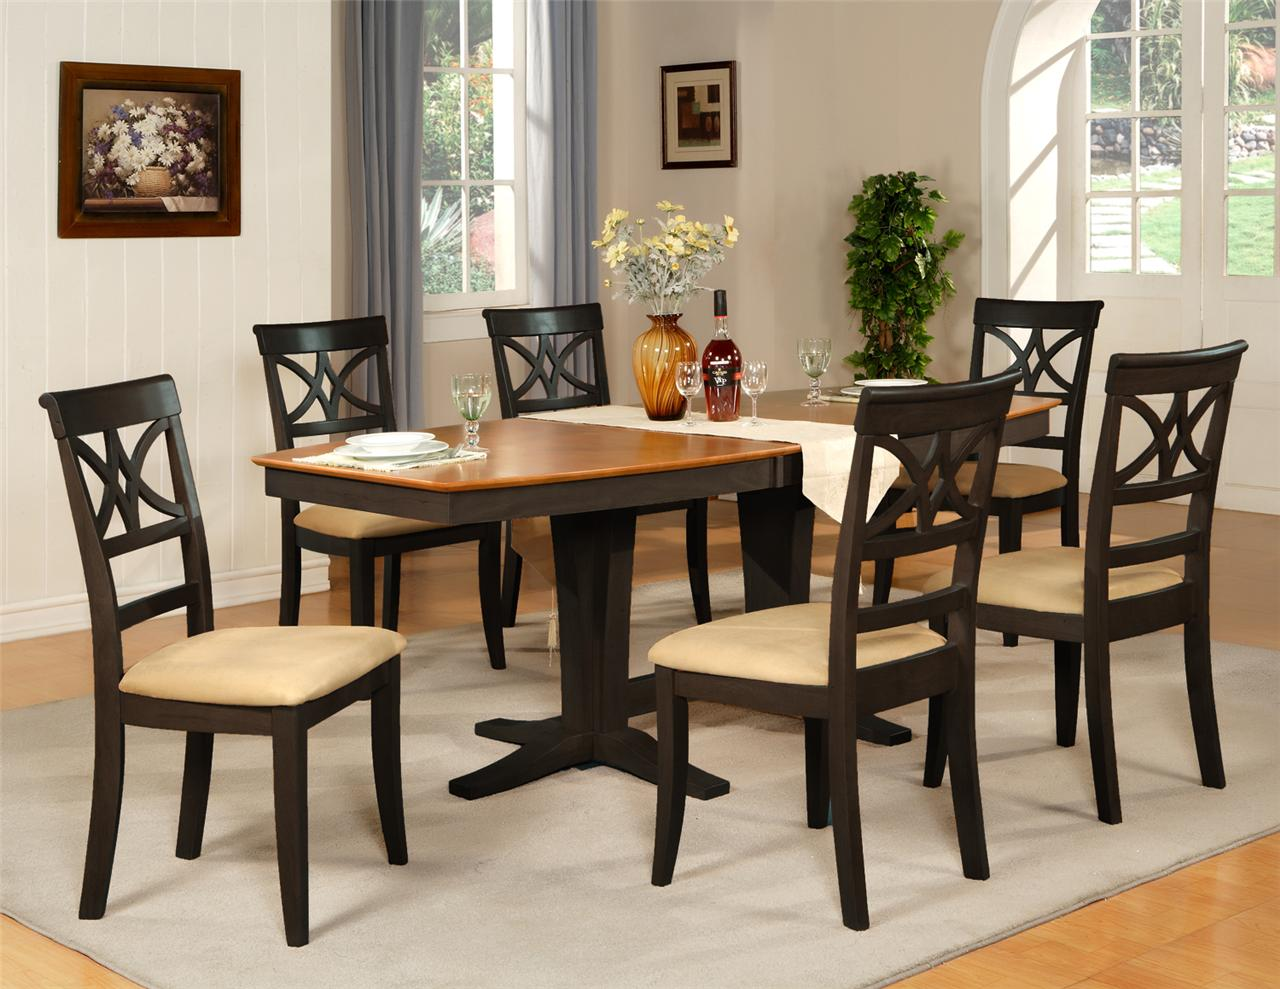 ... Dinette4less Store For Many More Dining Dinette Kitchen Table & Chairs